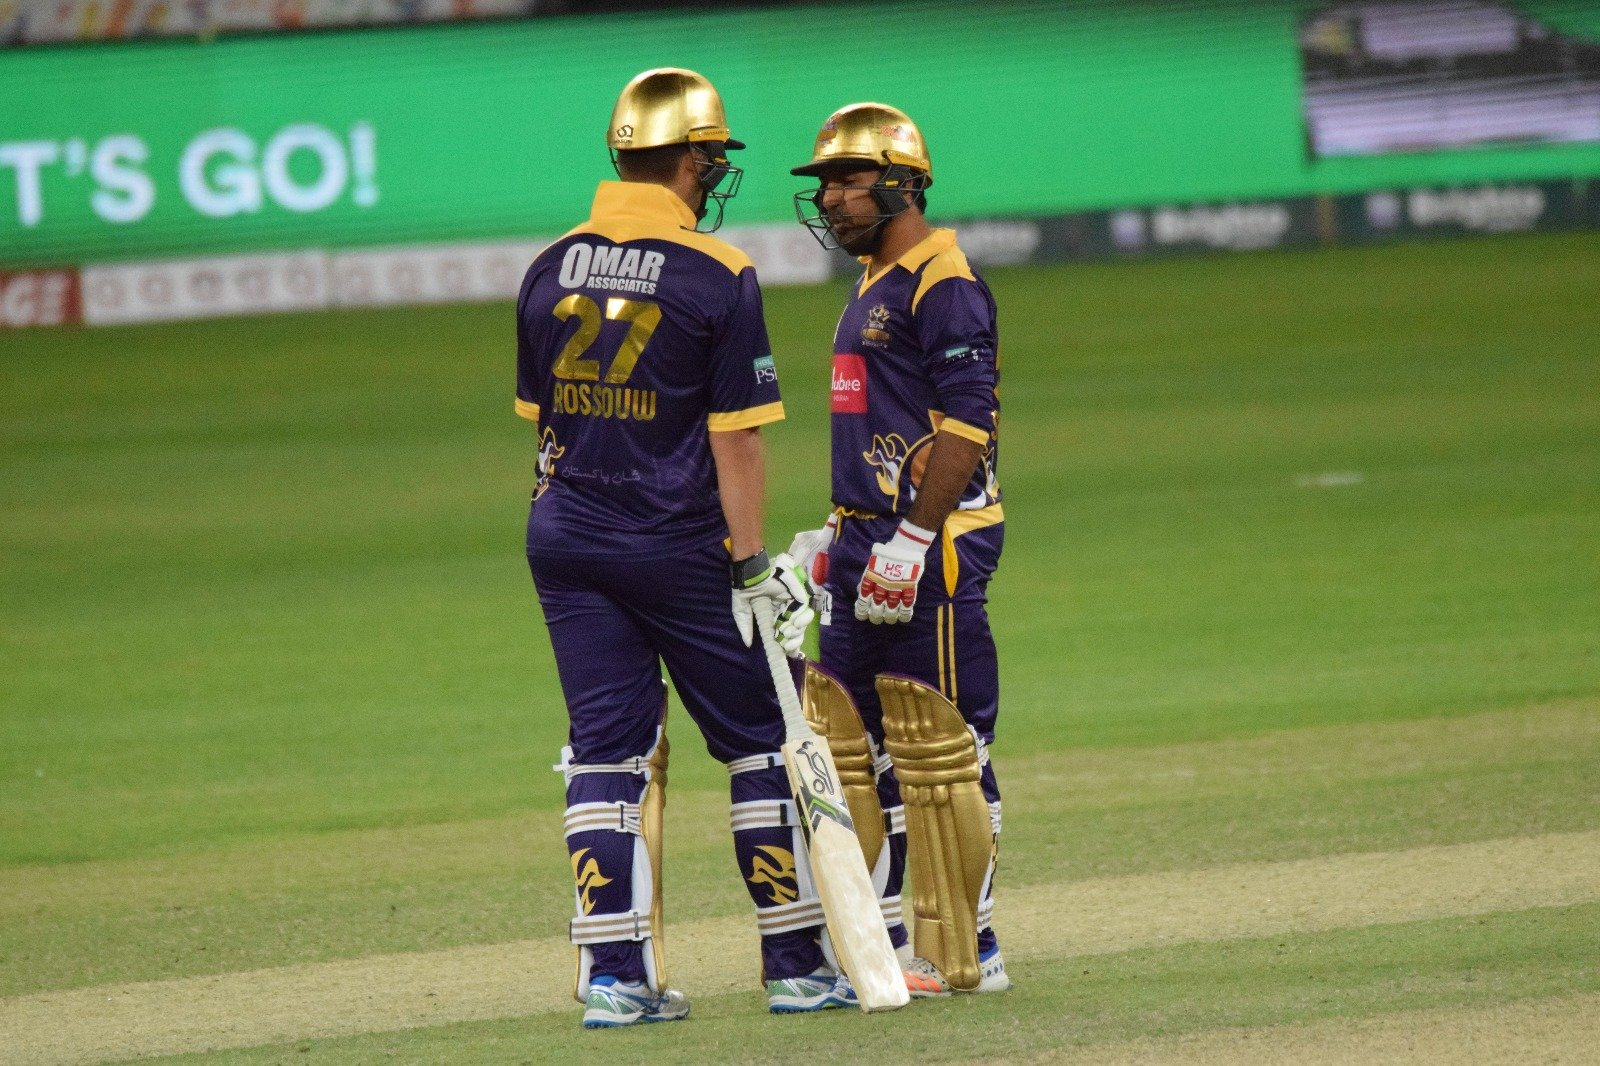 bouncing back quetta gladiators have shown great spirit in the ongoing t20 league and suffered their first defeat against islamabad united they would be raging to get back to winning ways against peshawar zalmi photo courtesy psl